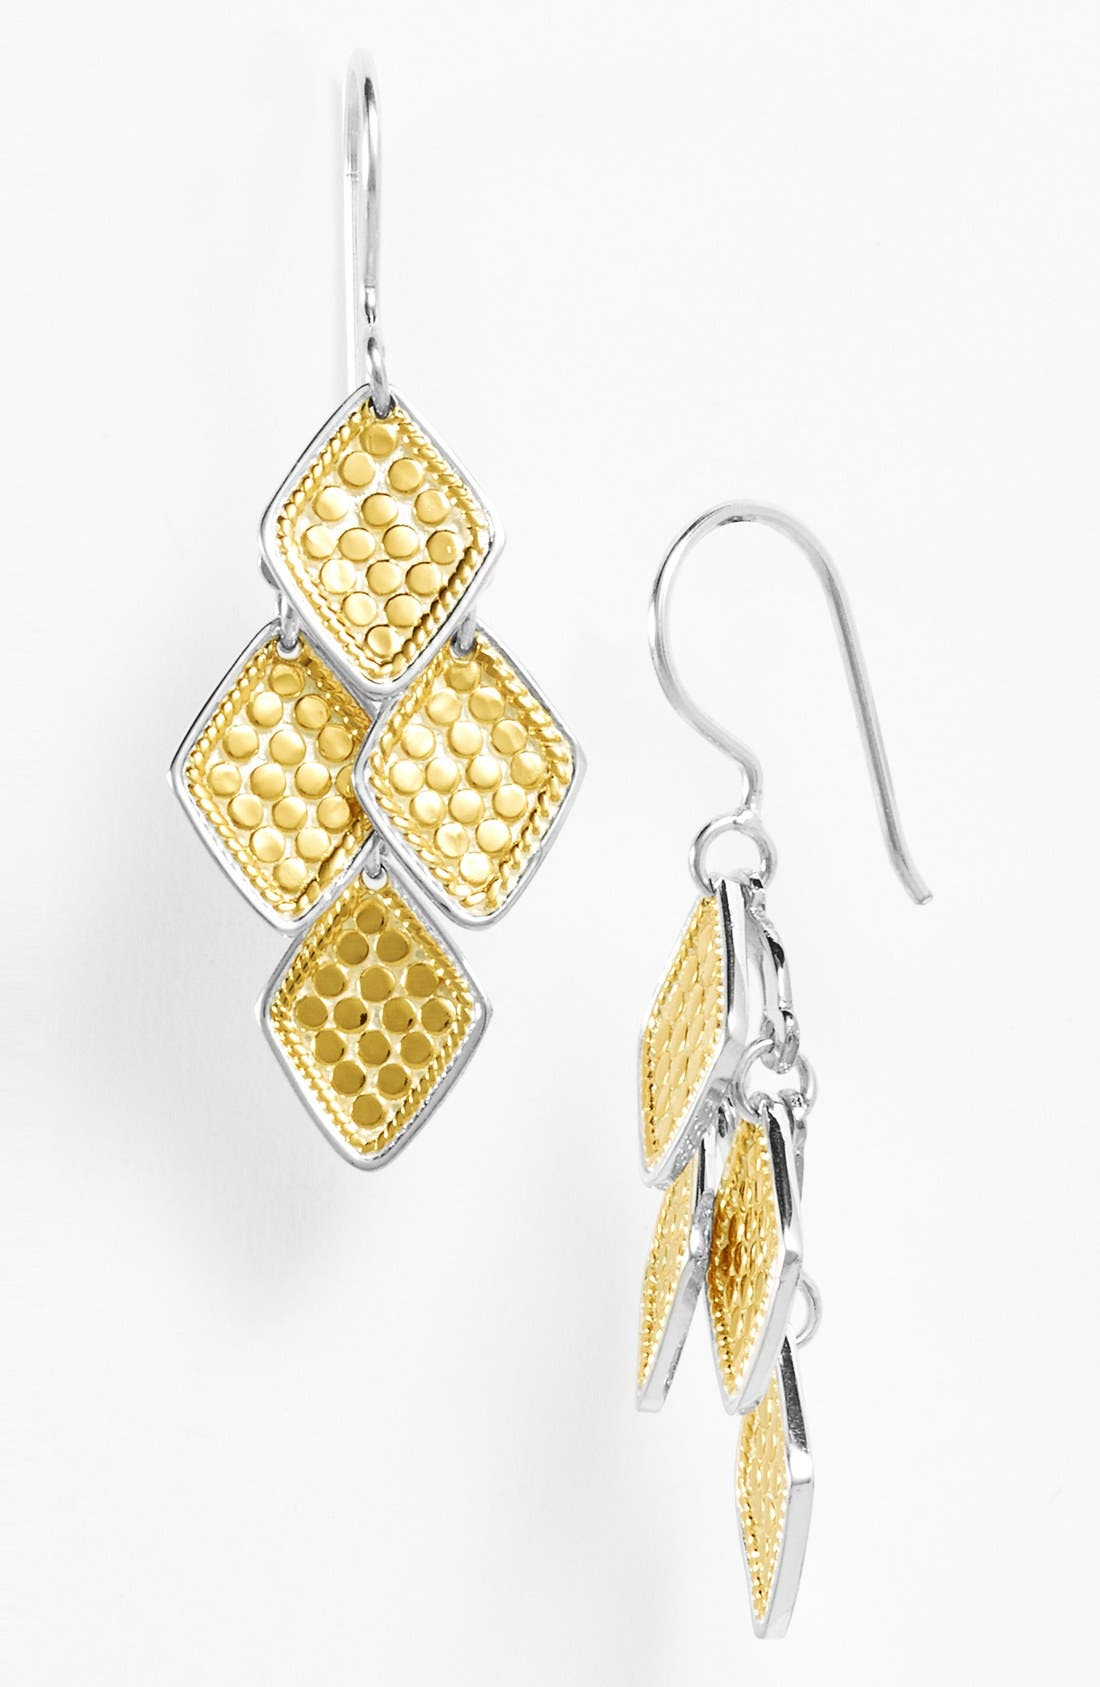 Main Image - Anna Beck 'Gili' Small Chandelier Earrings